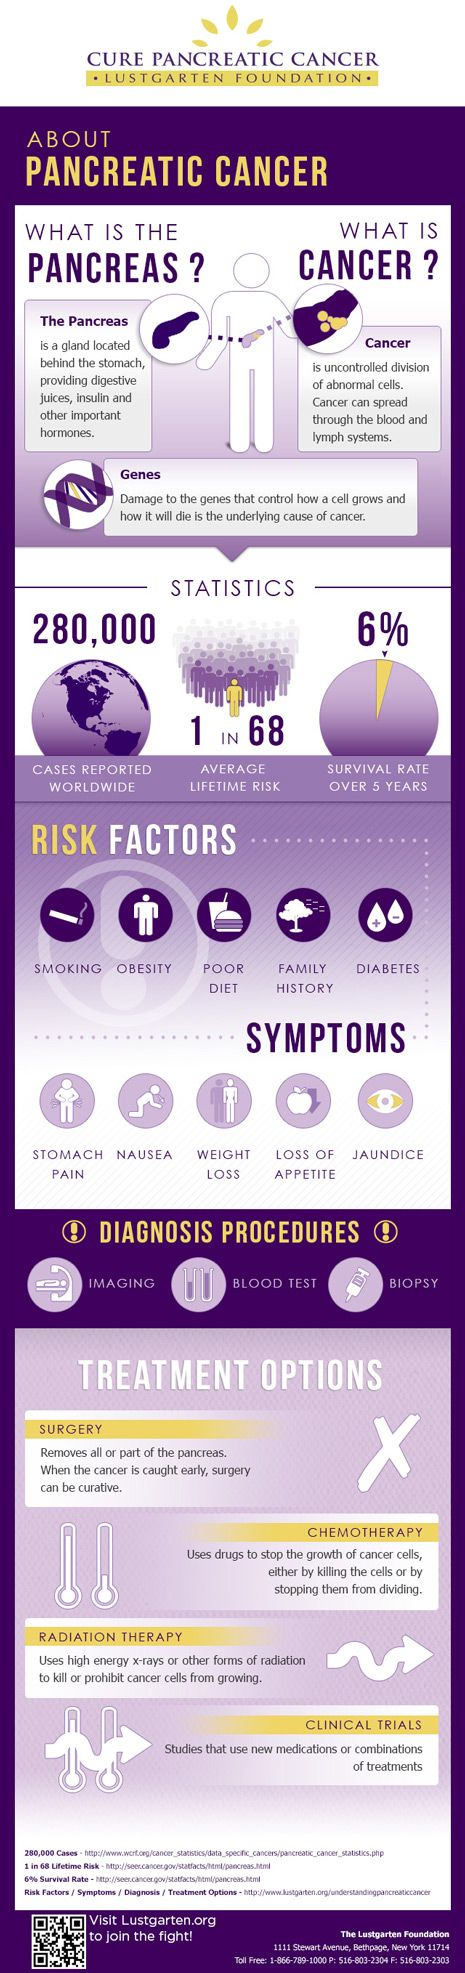 Quick Facts: A Pancreatic Cancer Infographic - Pancreatic Cancer Research - Lustgarten Foundation